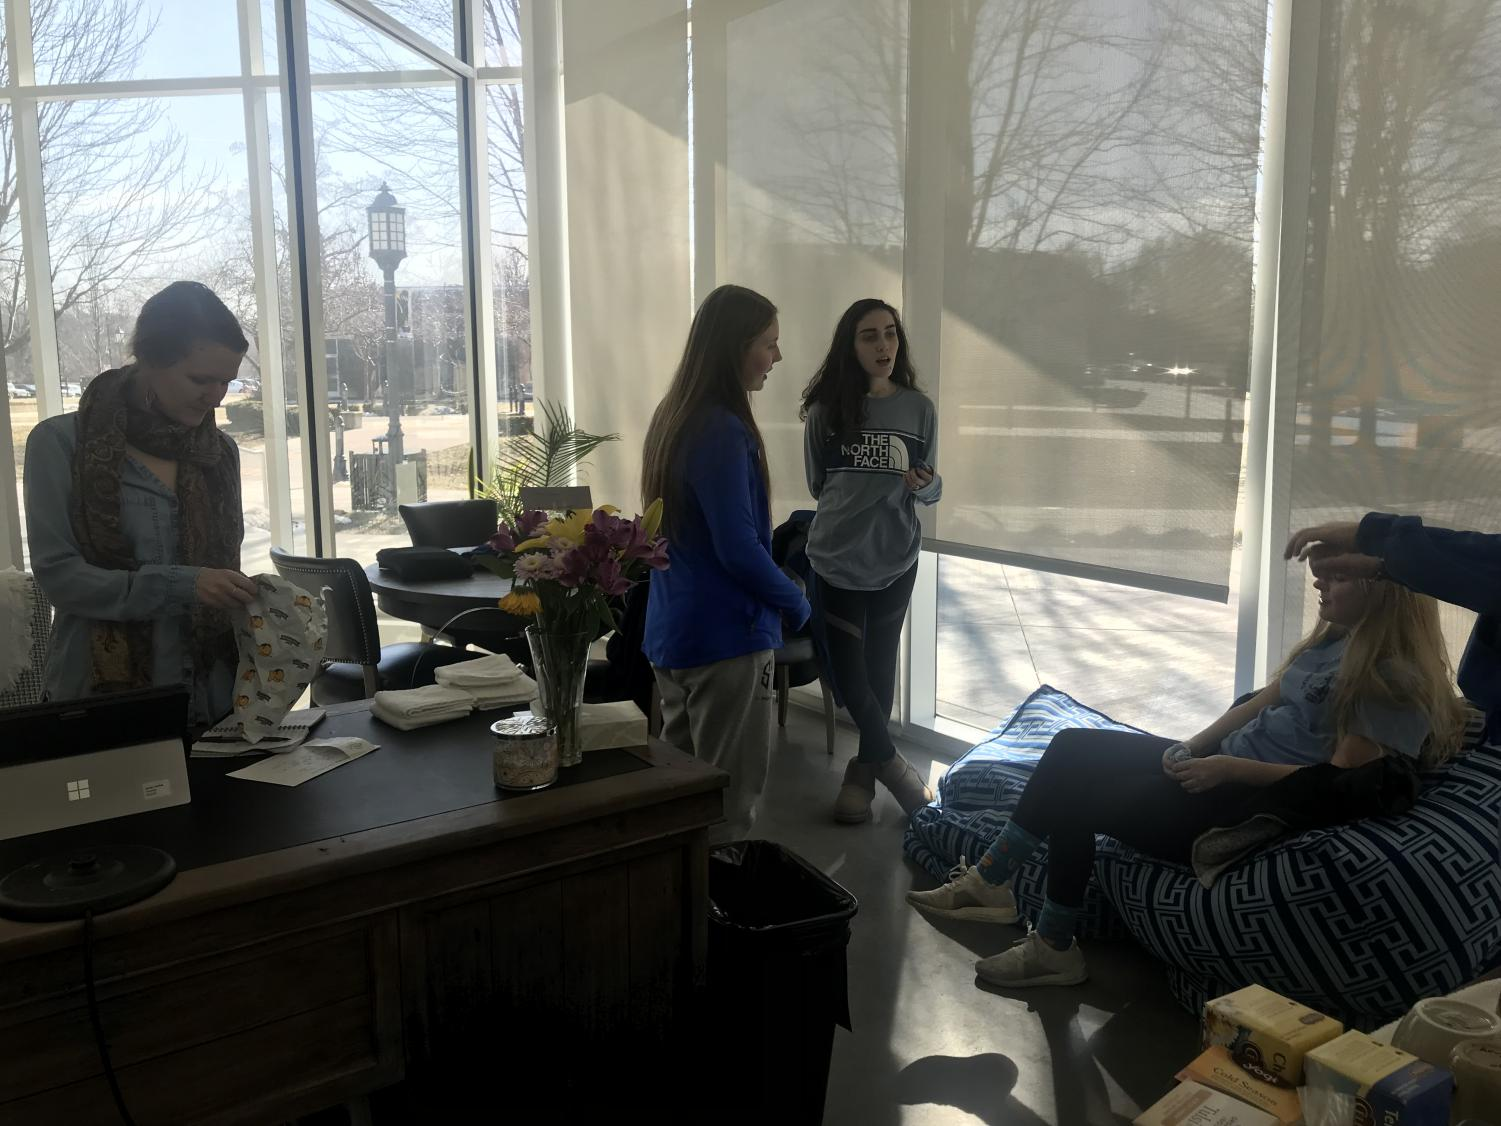 Mrs. Arredondo and students Holly Phalen, Sasha Blair and Claire Wunder have a discussion about faith Feb.1. photo by Kendall Lanier